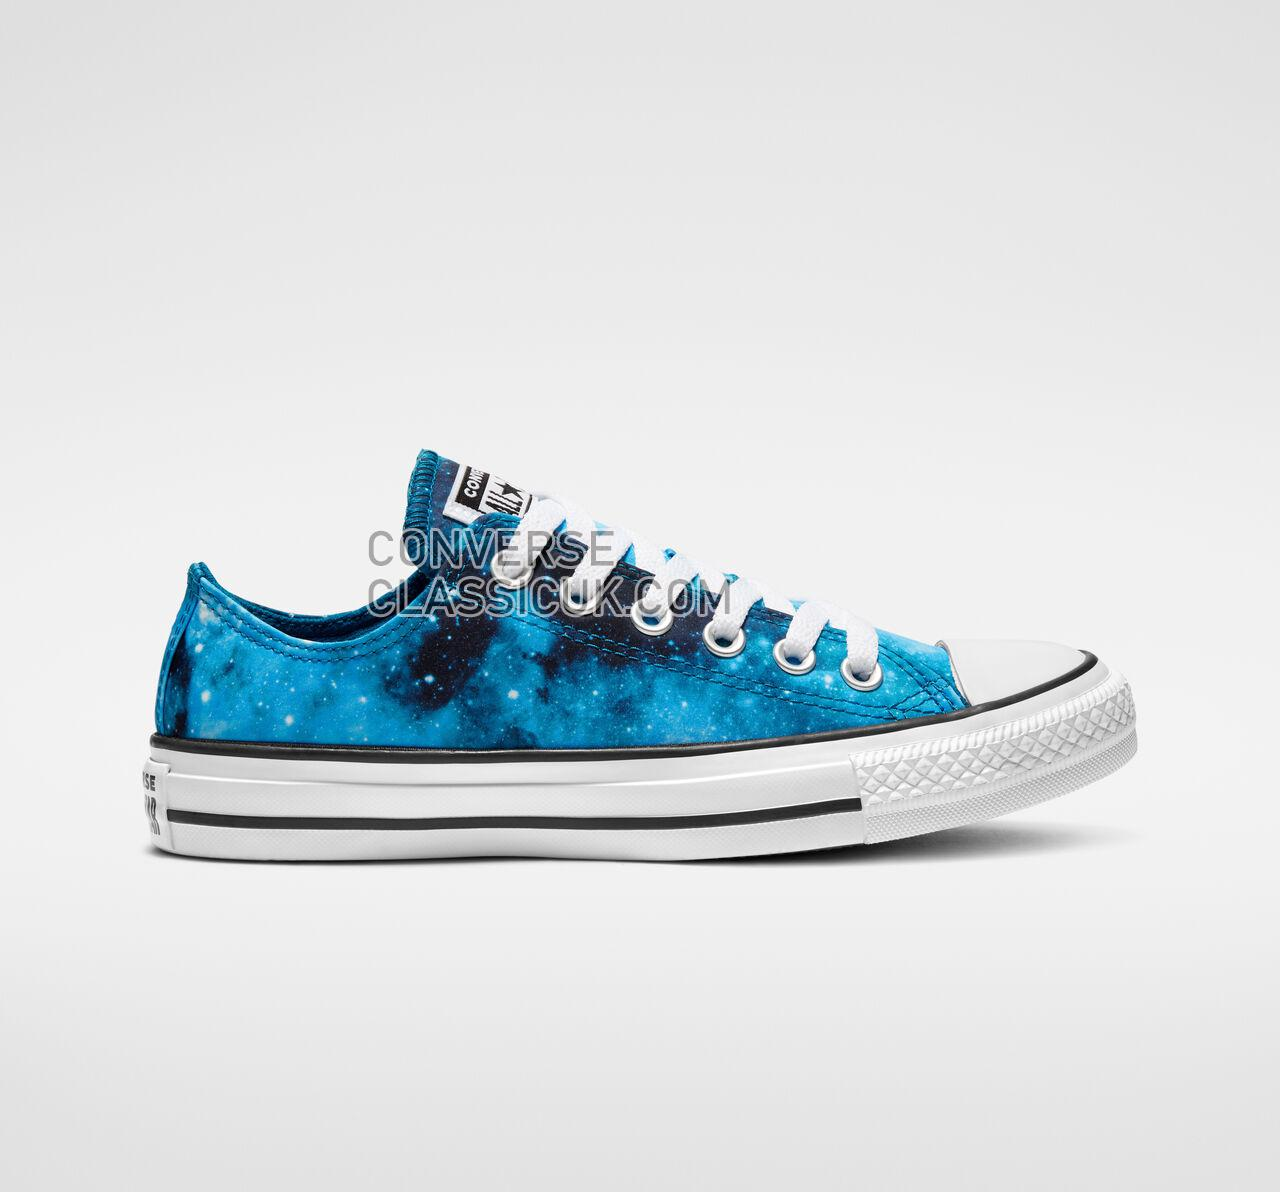 Converse Chuck Taylor All Star Miss Galaxy Low Top Womens 565211F Green Abyss/Turbo Green/White Shoes